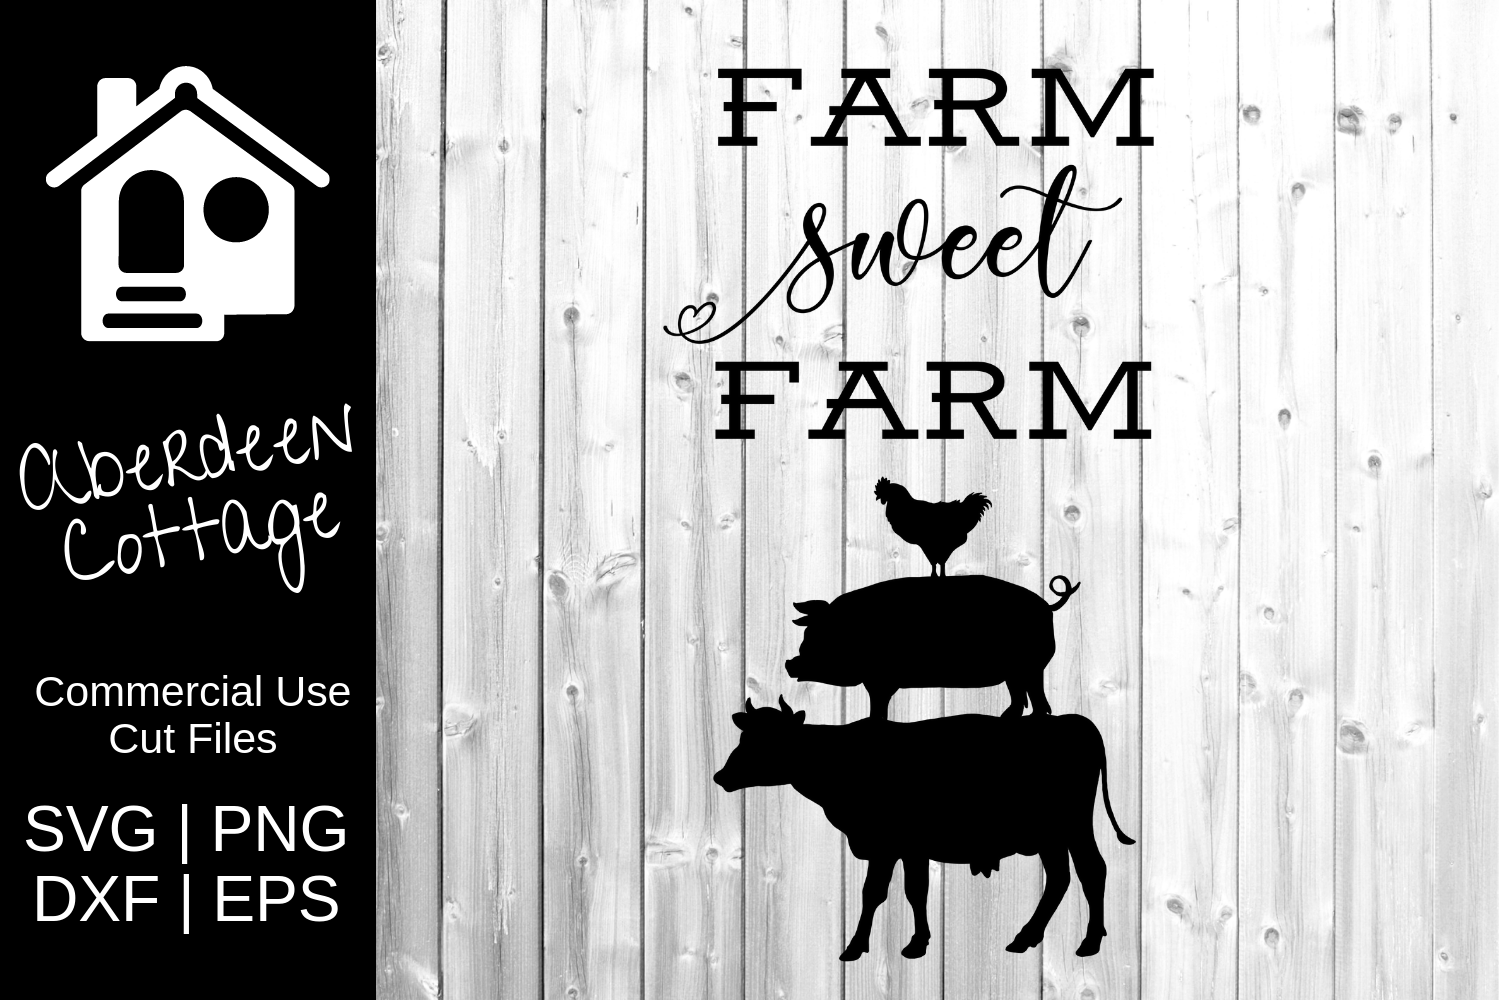 Farm Sweet Farm Design - SVG, PNG, DXF, EPS Formats example image 2